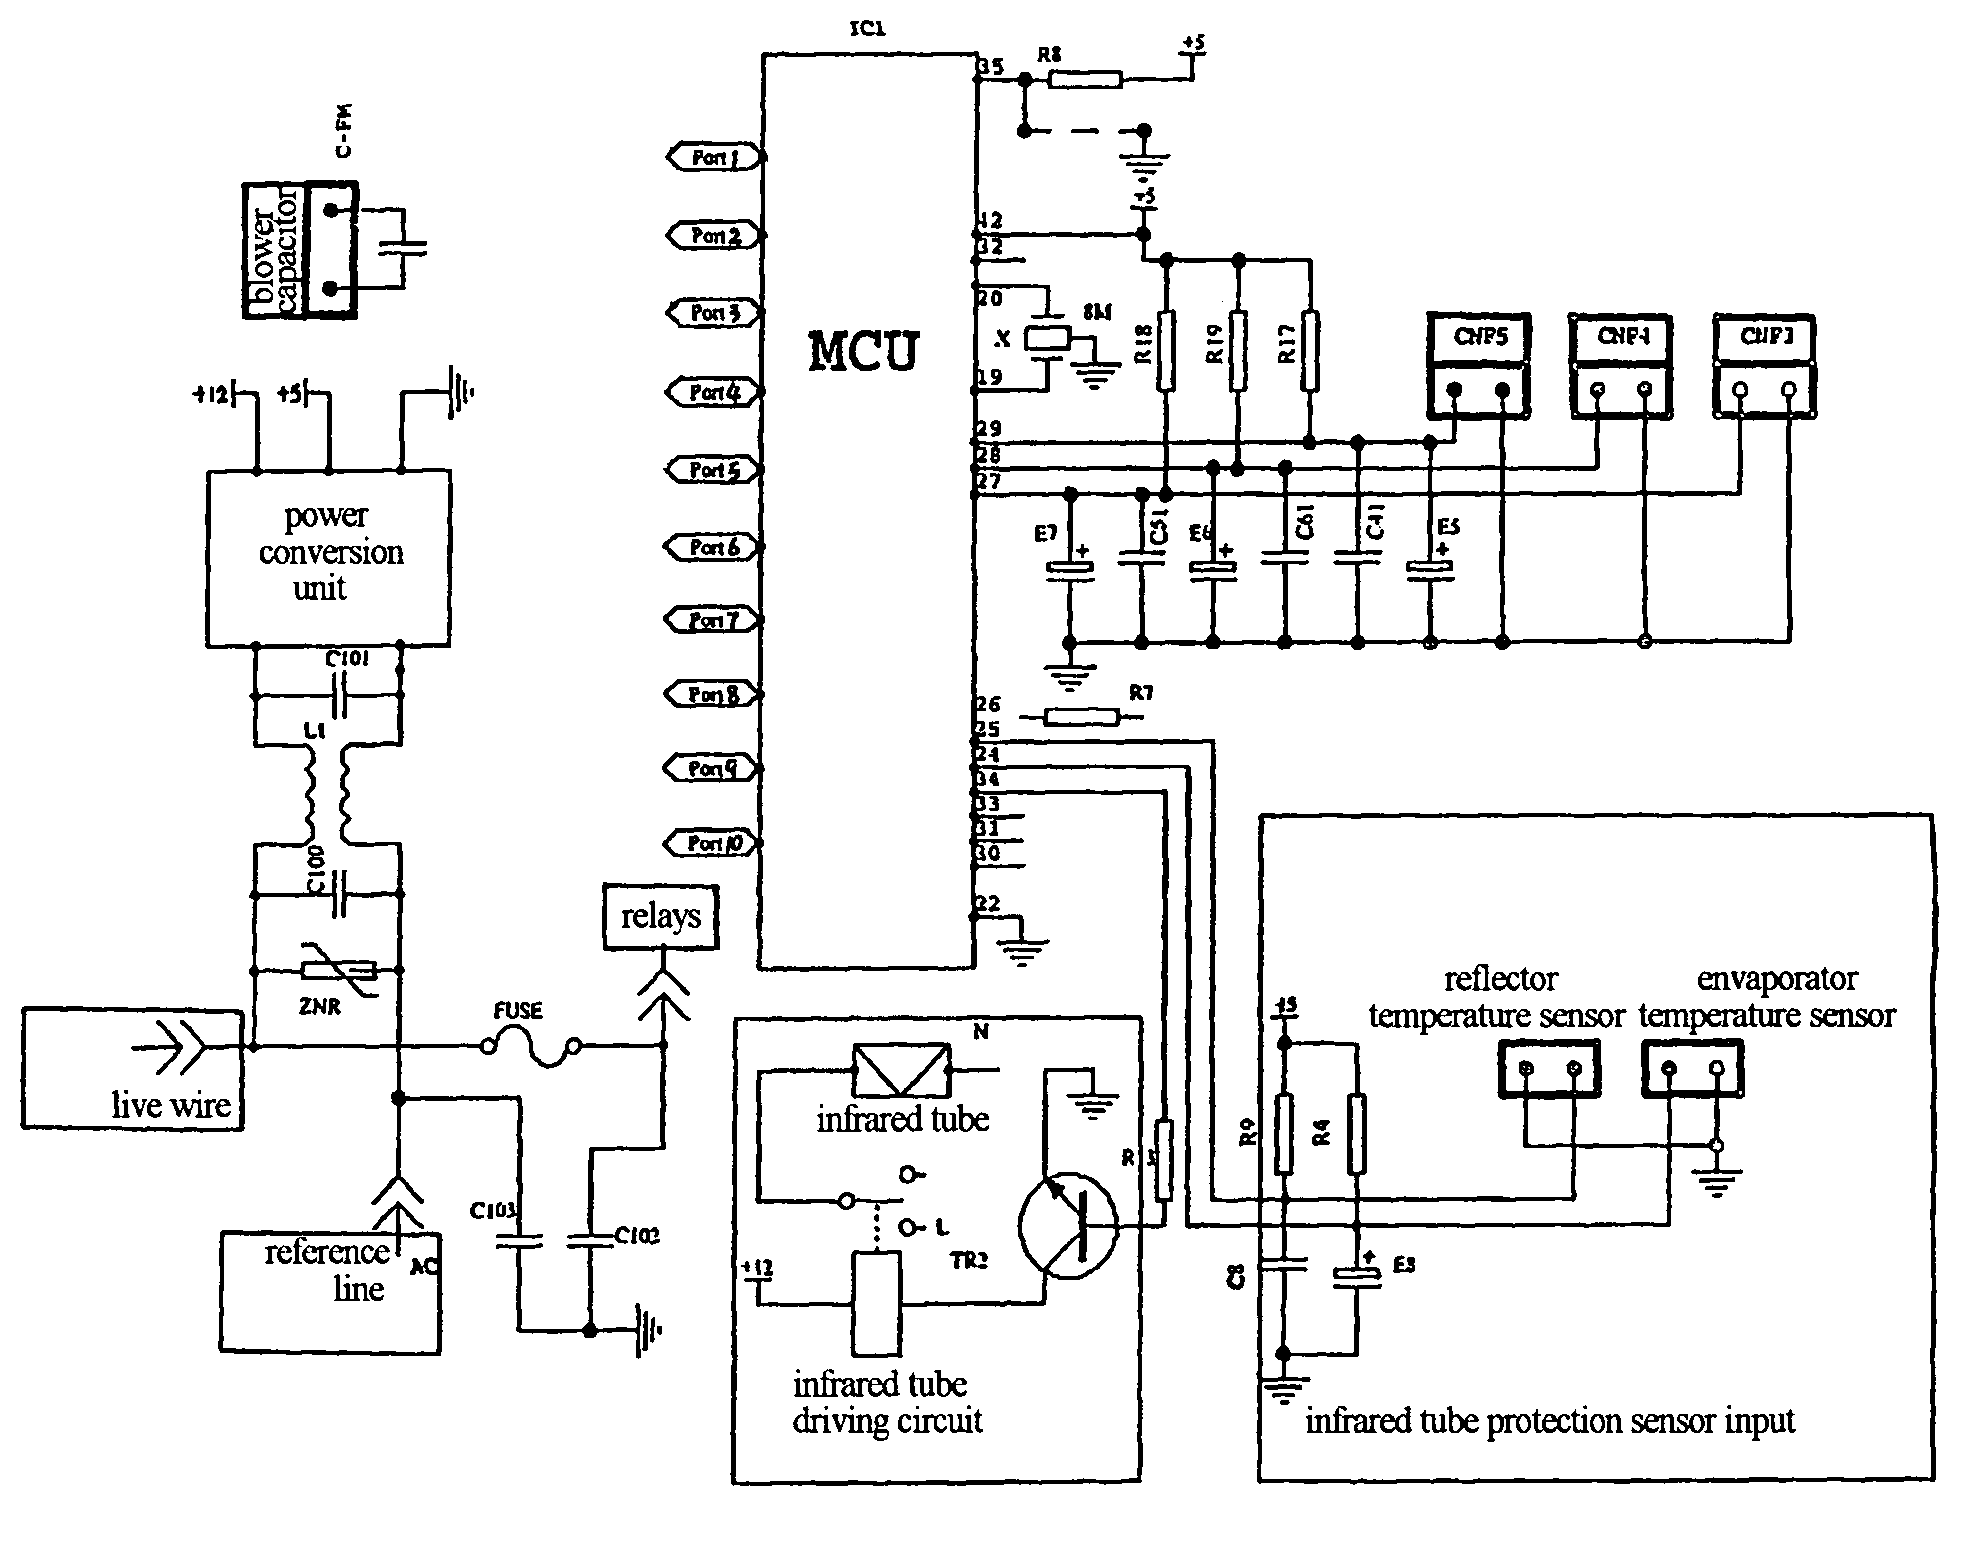 galanz air conditioner wiring diagram galanz wiring diagrams patent us7404297 air conditioner a light wave unit for